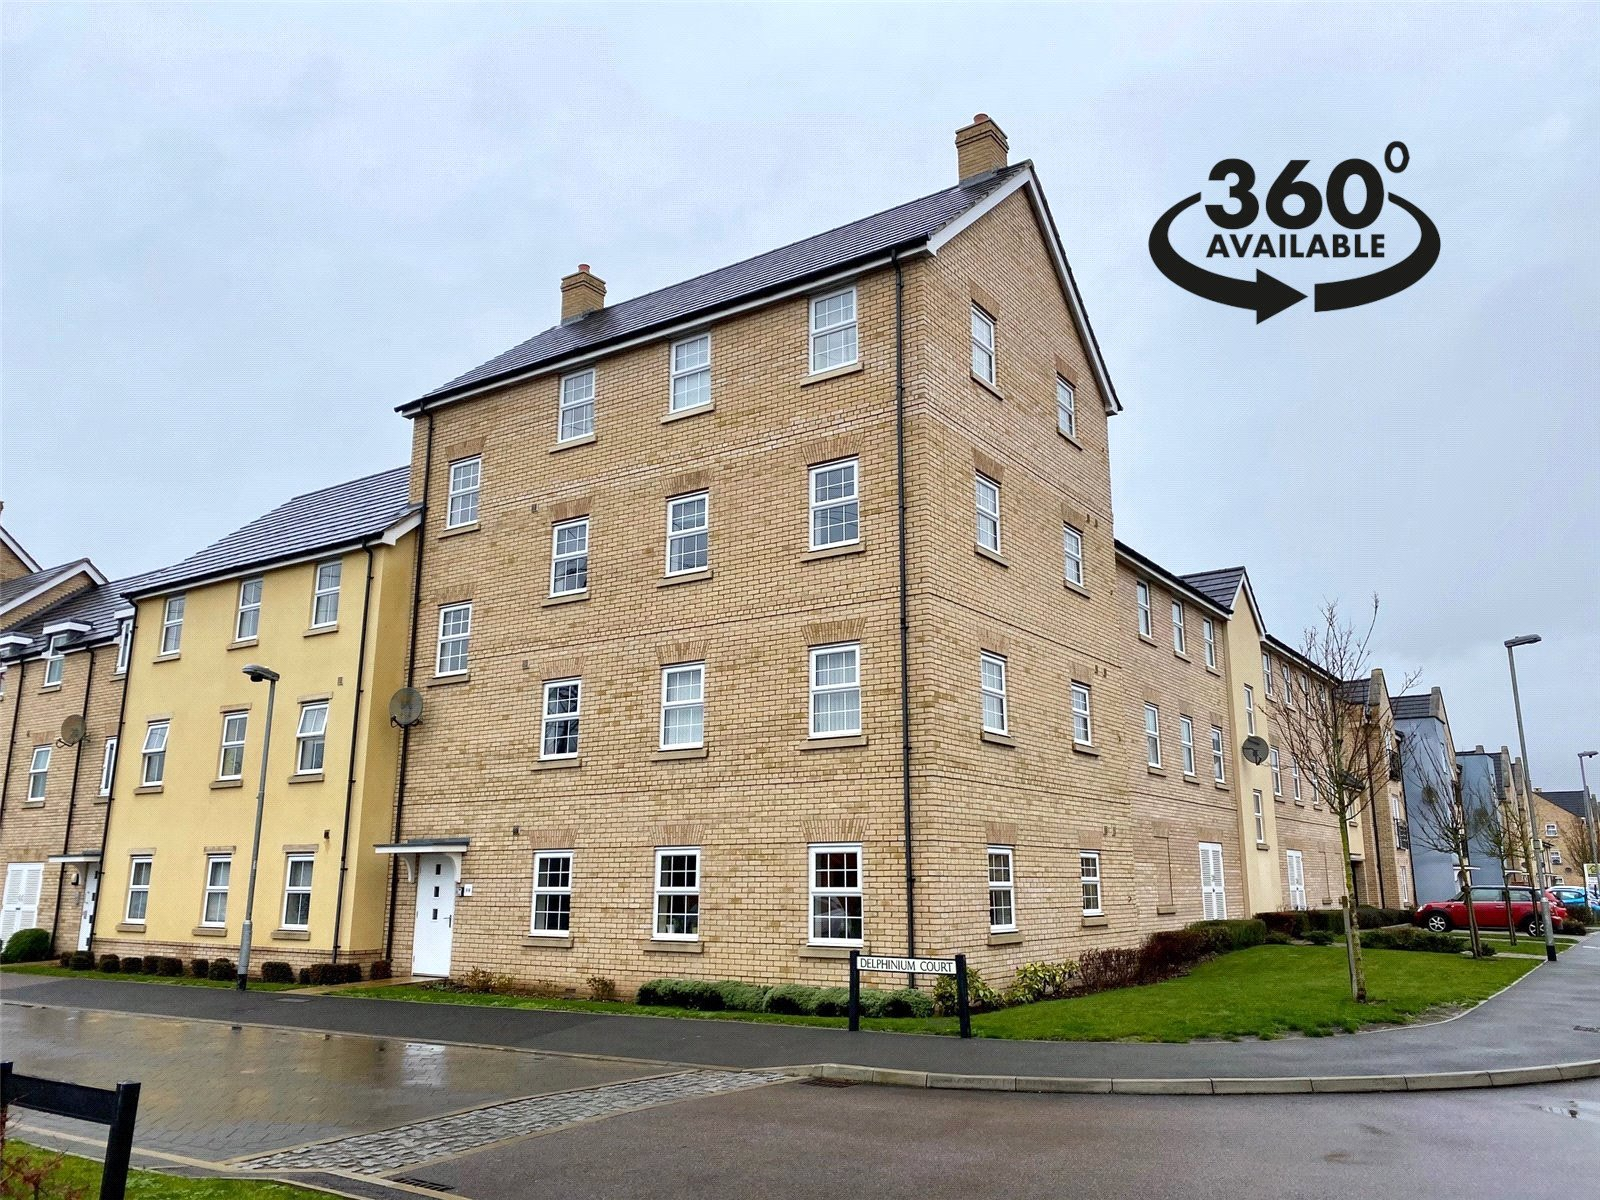 2 bed apartment for sale in Eynesbury, PE19 2LL, PE19